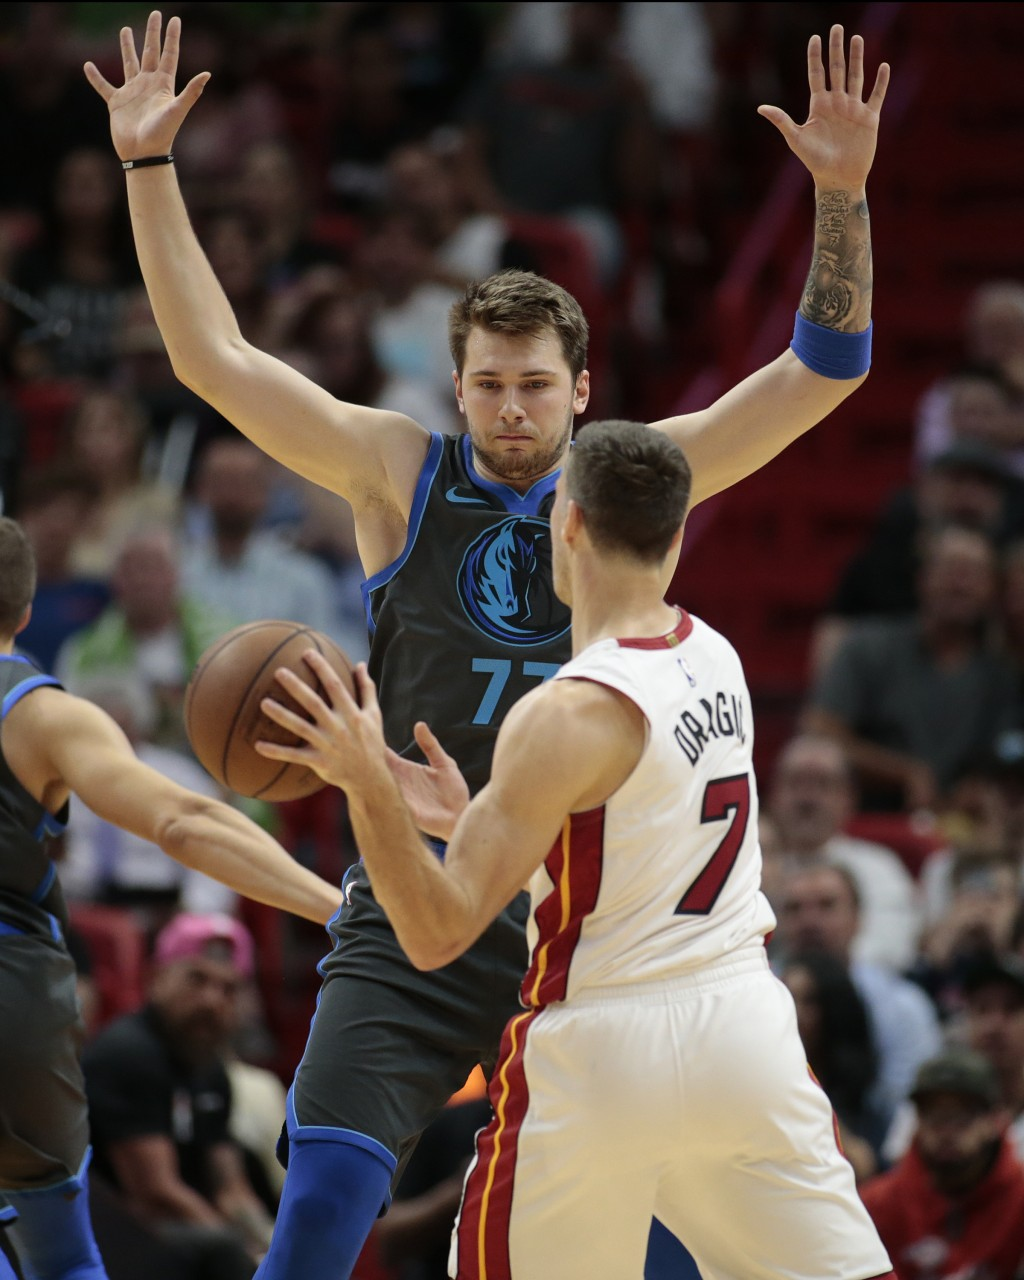 hot sale online 4a115 0d34e Goran Dragic, Luka Doncic put on a show for S... | Taiwan News